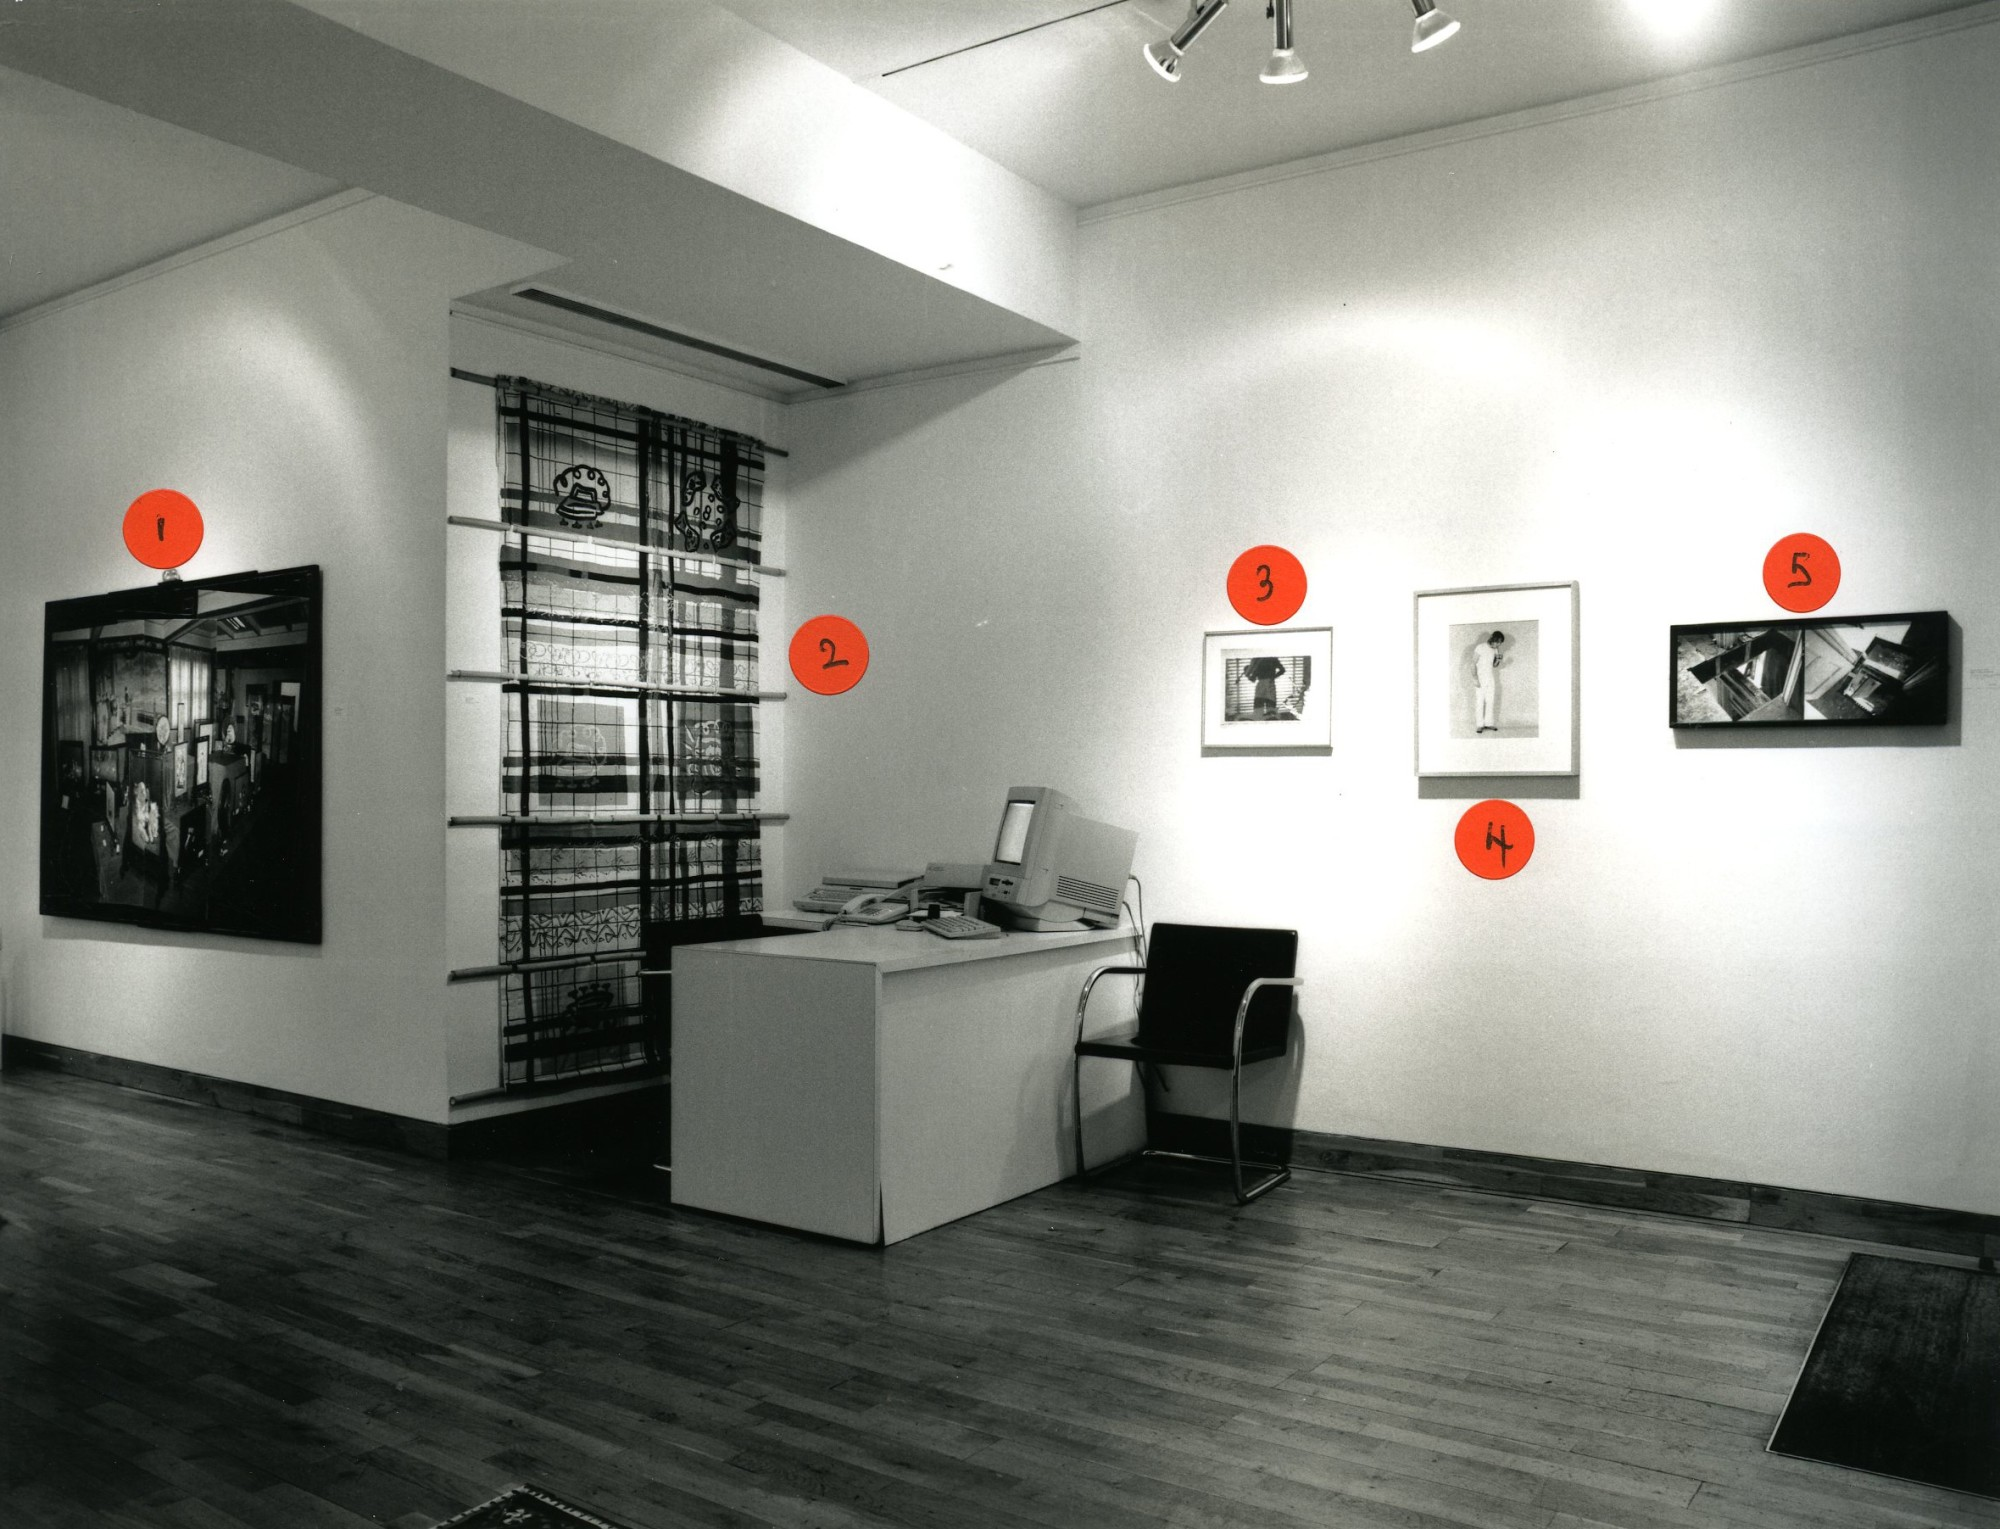 """<span class=""""link fancybox-details-link""""><a href=""""/exhibitions/153/works/image_standalone652/"""">View Detail Page</a></span><p>HOLLYBURY USA   A REFLECTION ON BLOOMSBURY   23 NOV - 23 DEC 1999   Installation View</p>"""